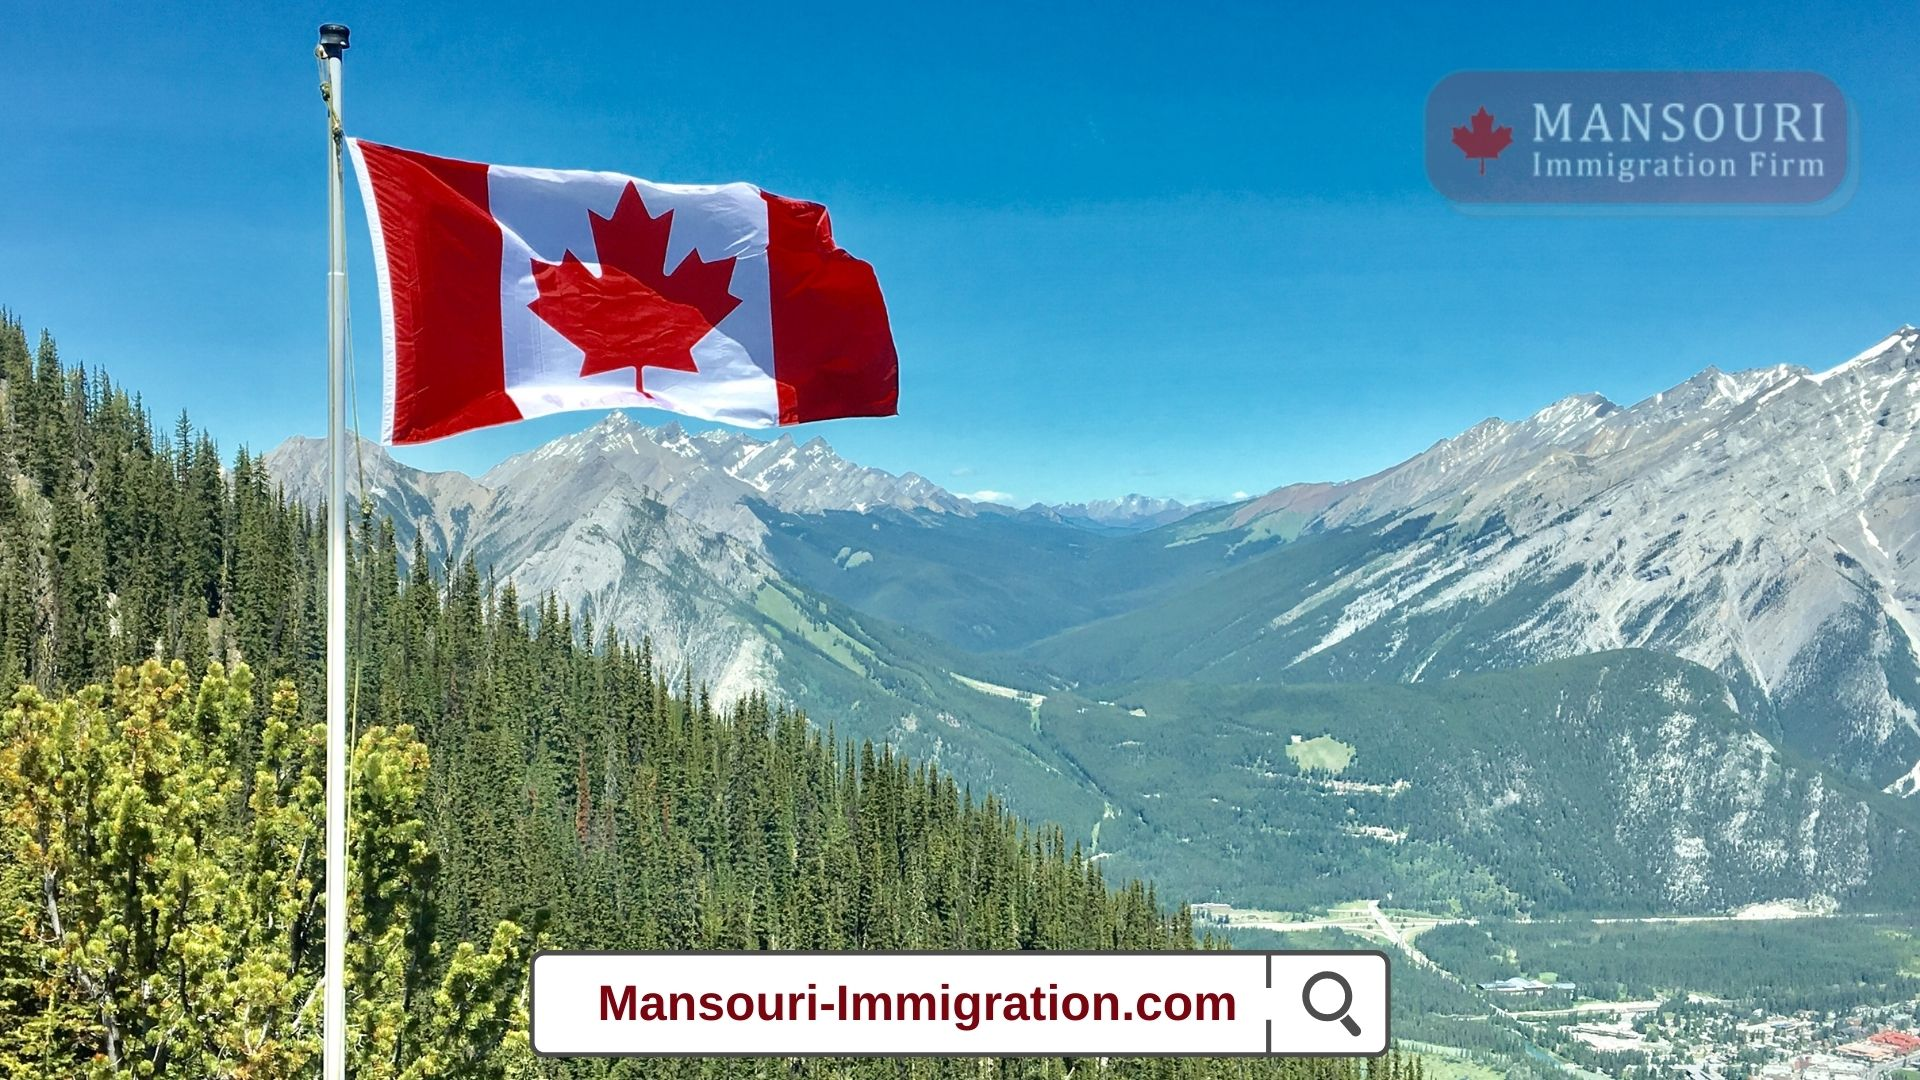 Canada admitted 57,365 immigrants through the Express Entry